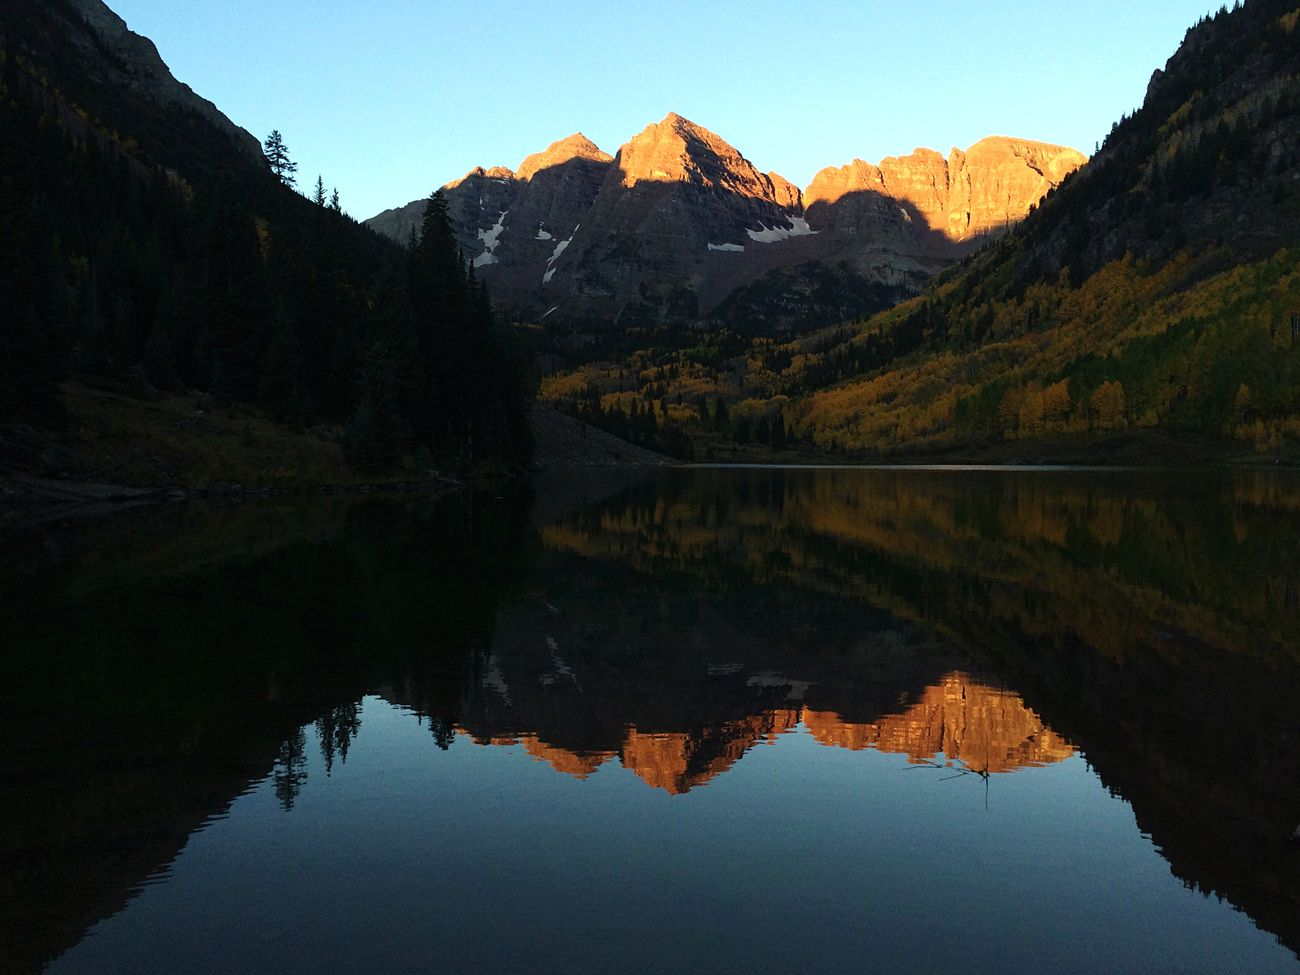 Maroon Bells Maroonbells Fallcolors Colorado Scenic Lookout Landscape_photography Foliage Water Reflections Sunrise